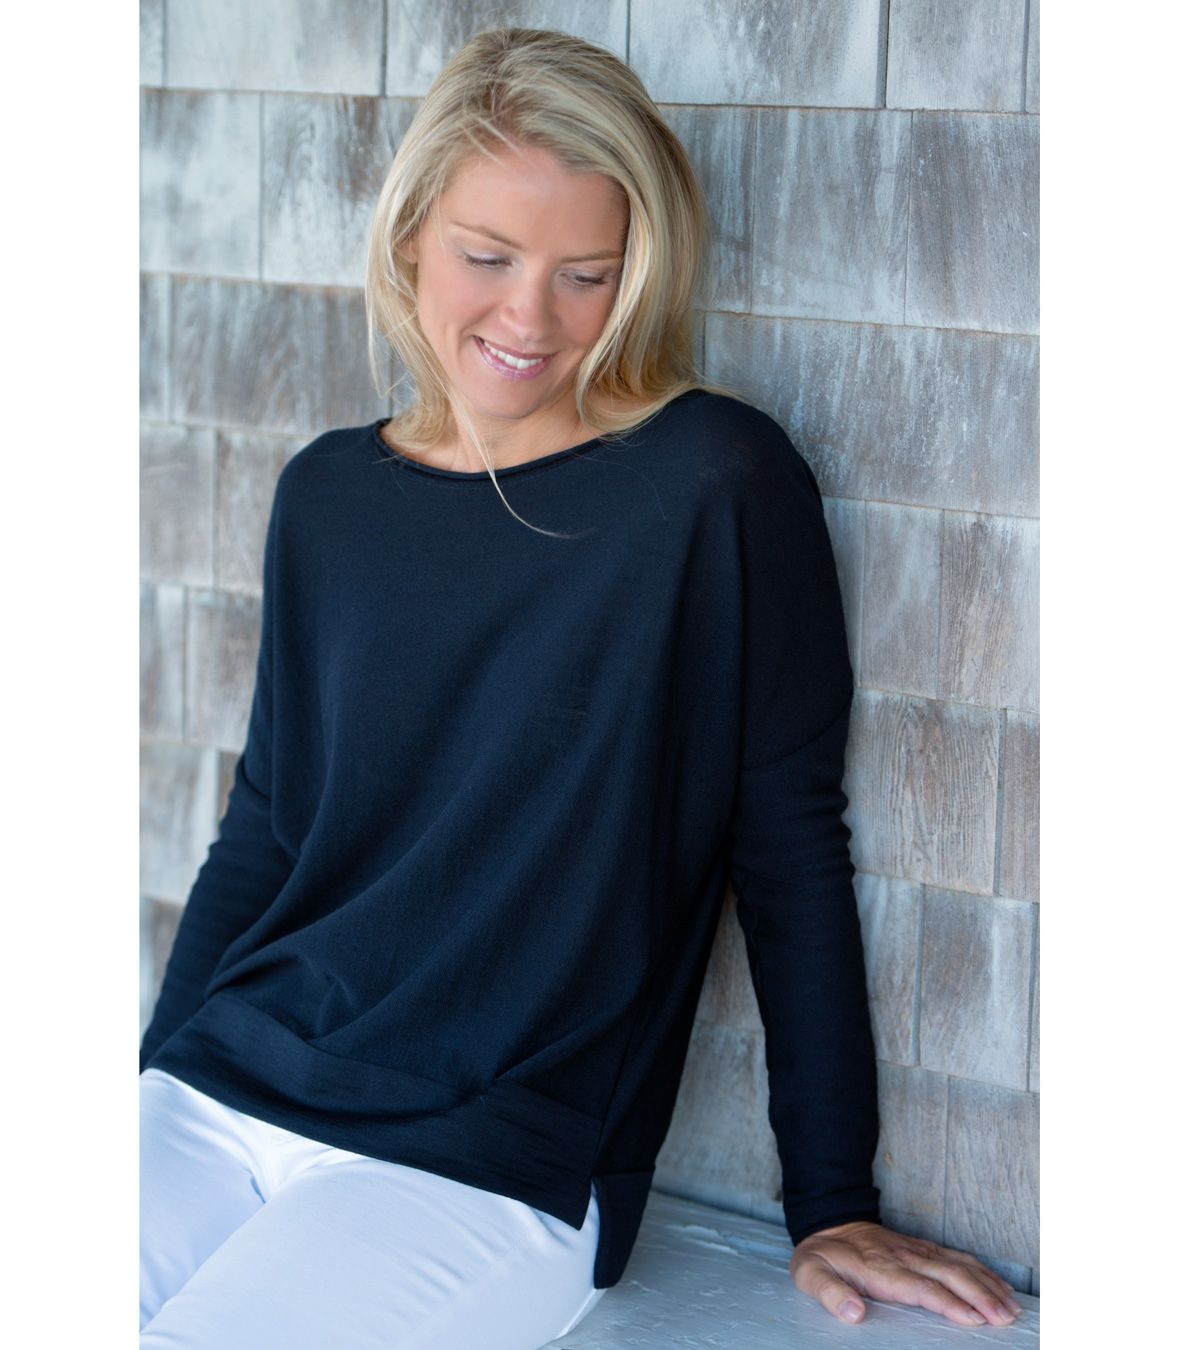 Women's 100% Merino Wool Crew Neck Sweater Made in USA | RAMBLERS WAY